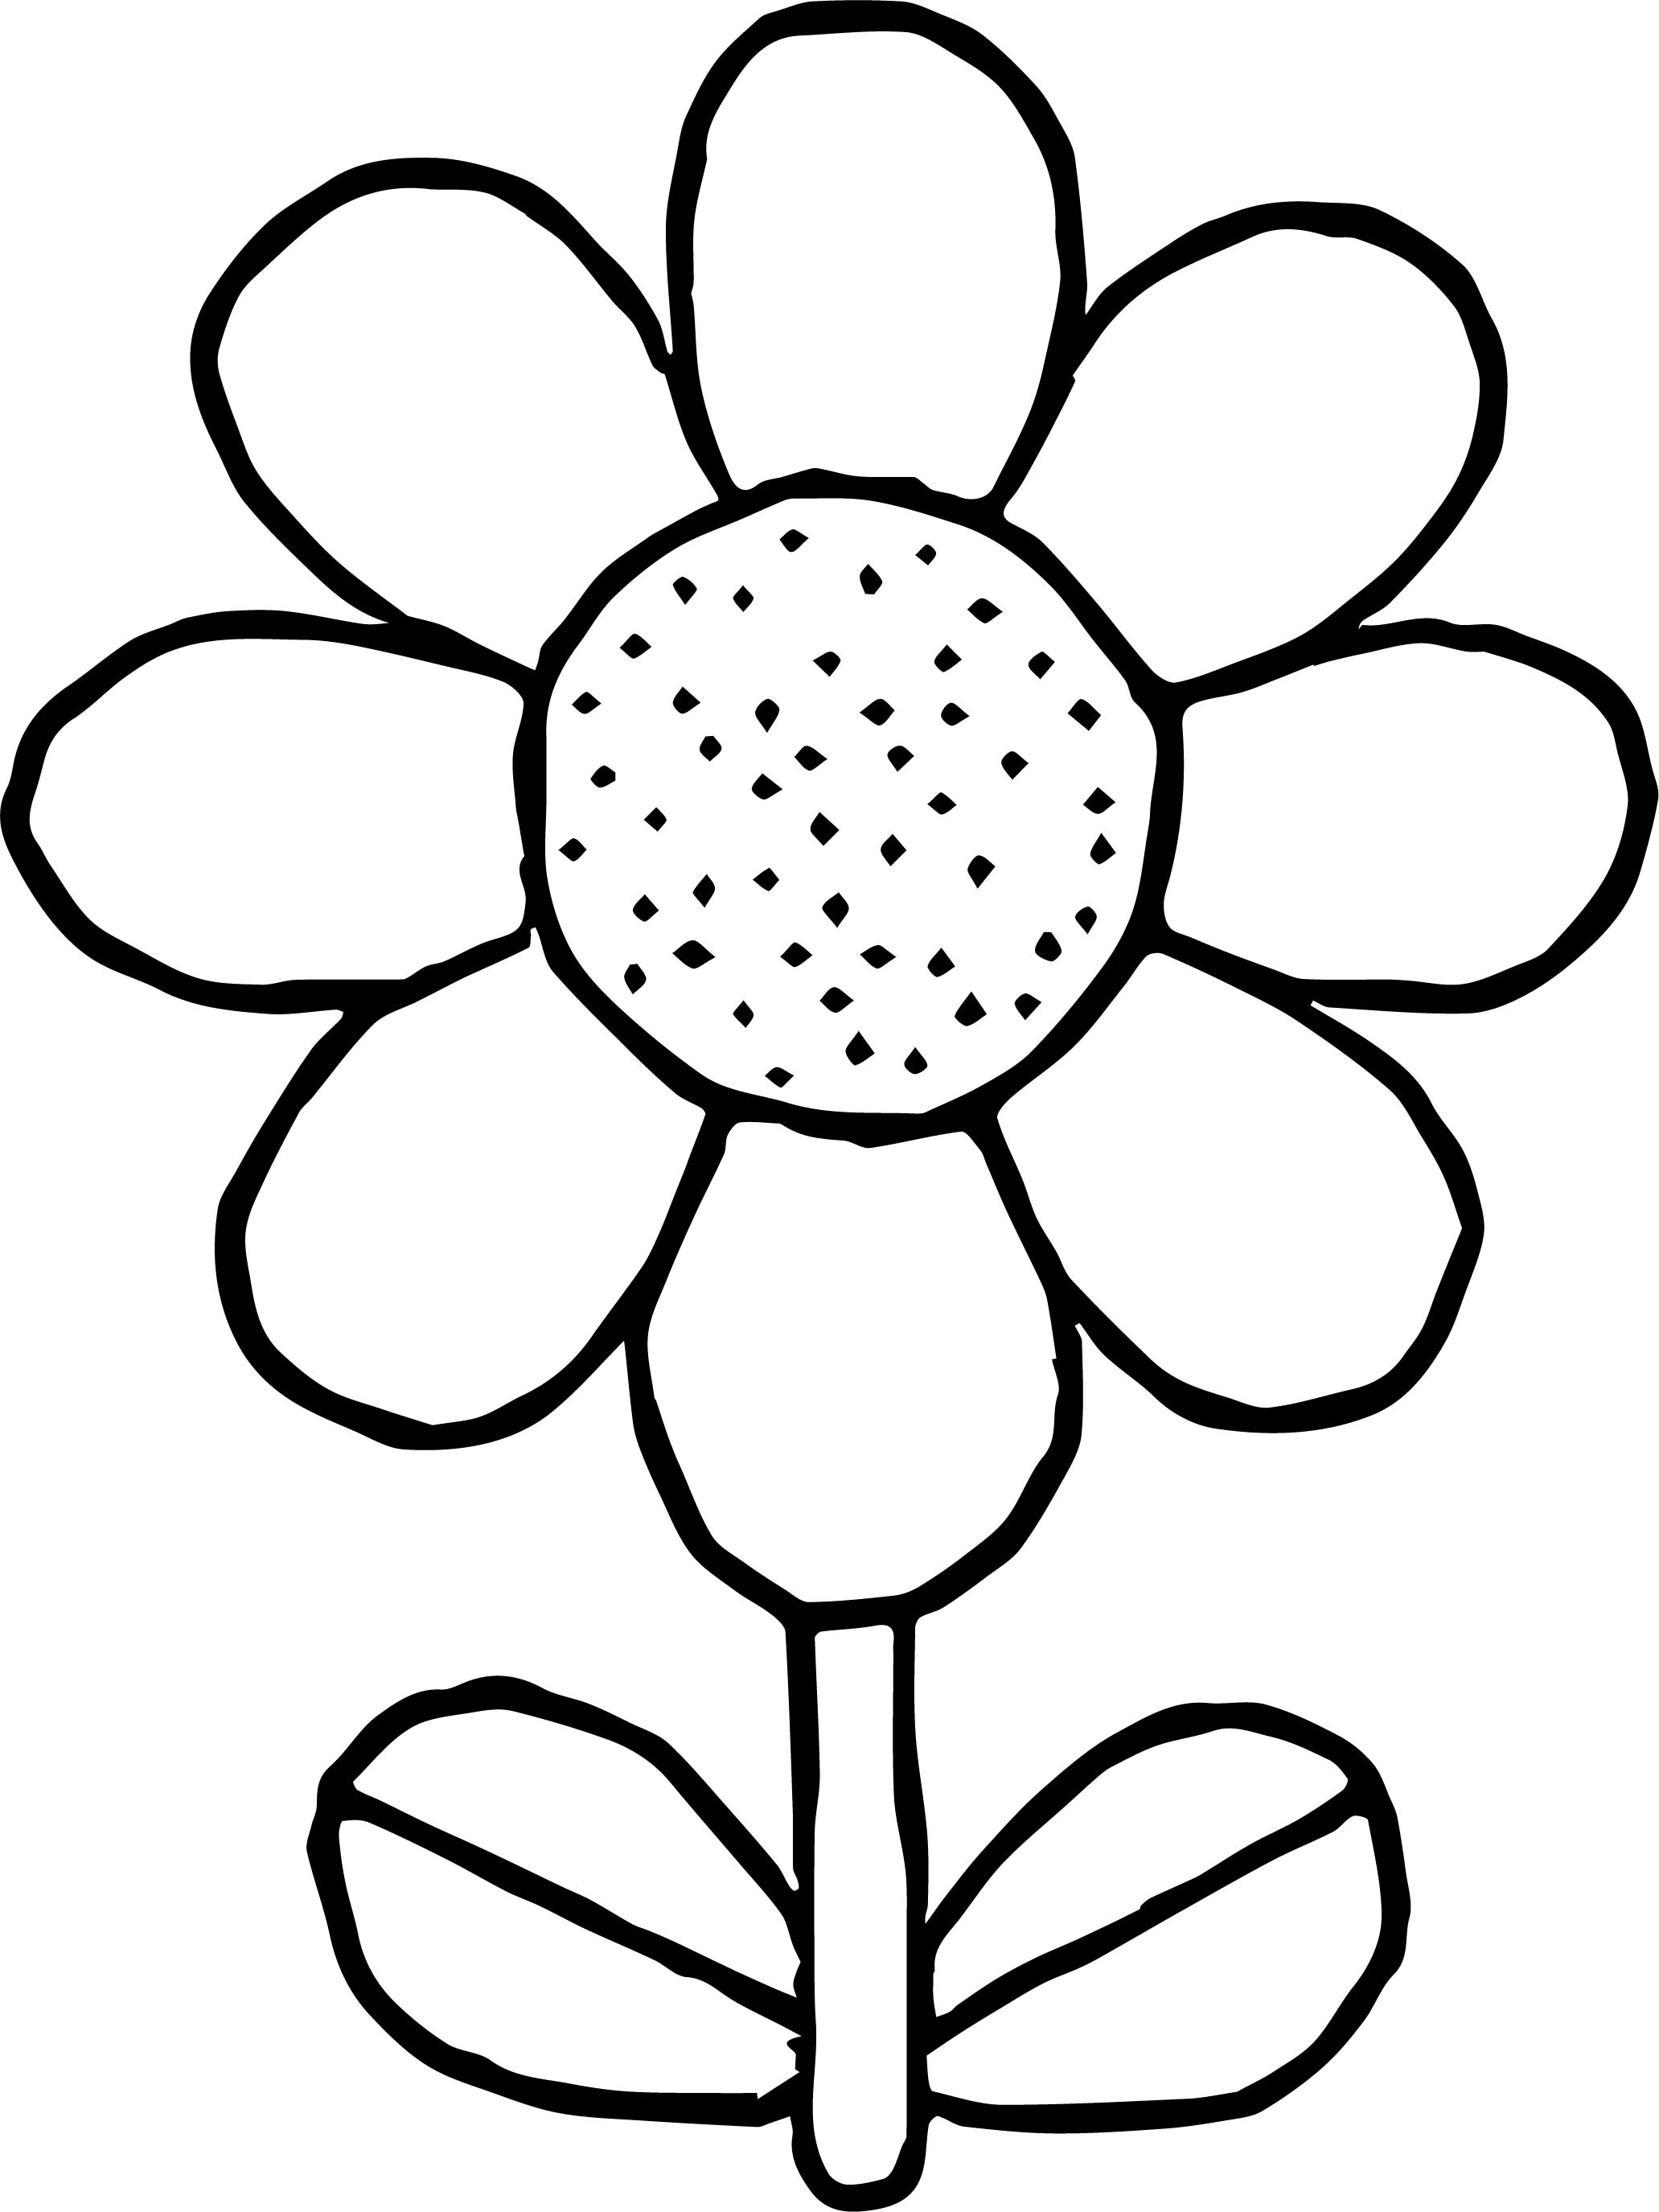 Jumbo Printable Coloring Pages May Flowers Jumbo Best